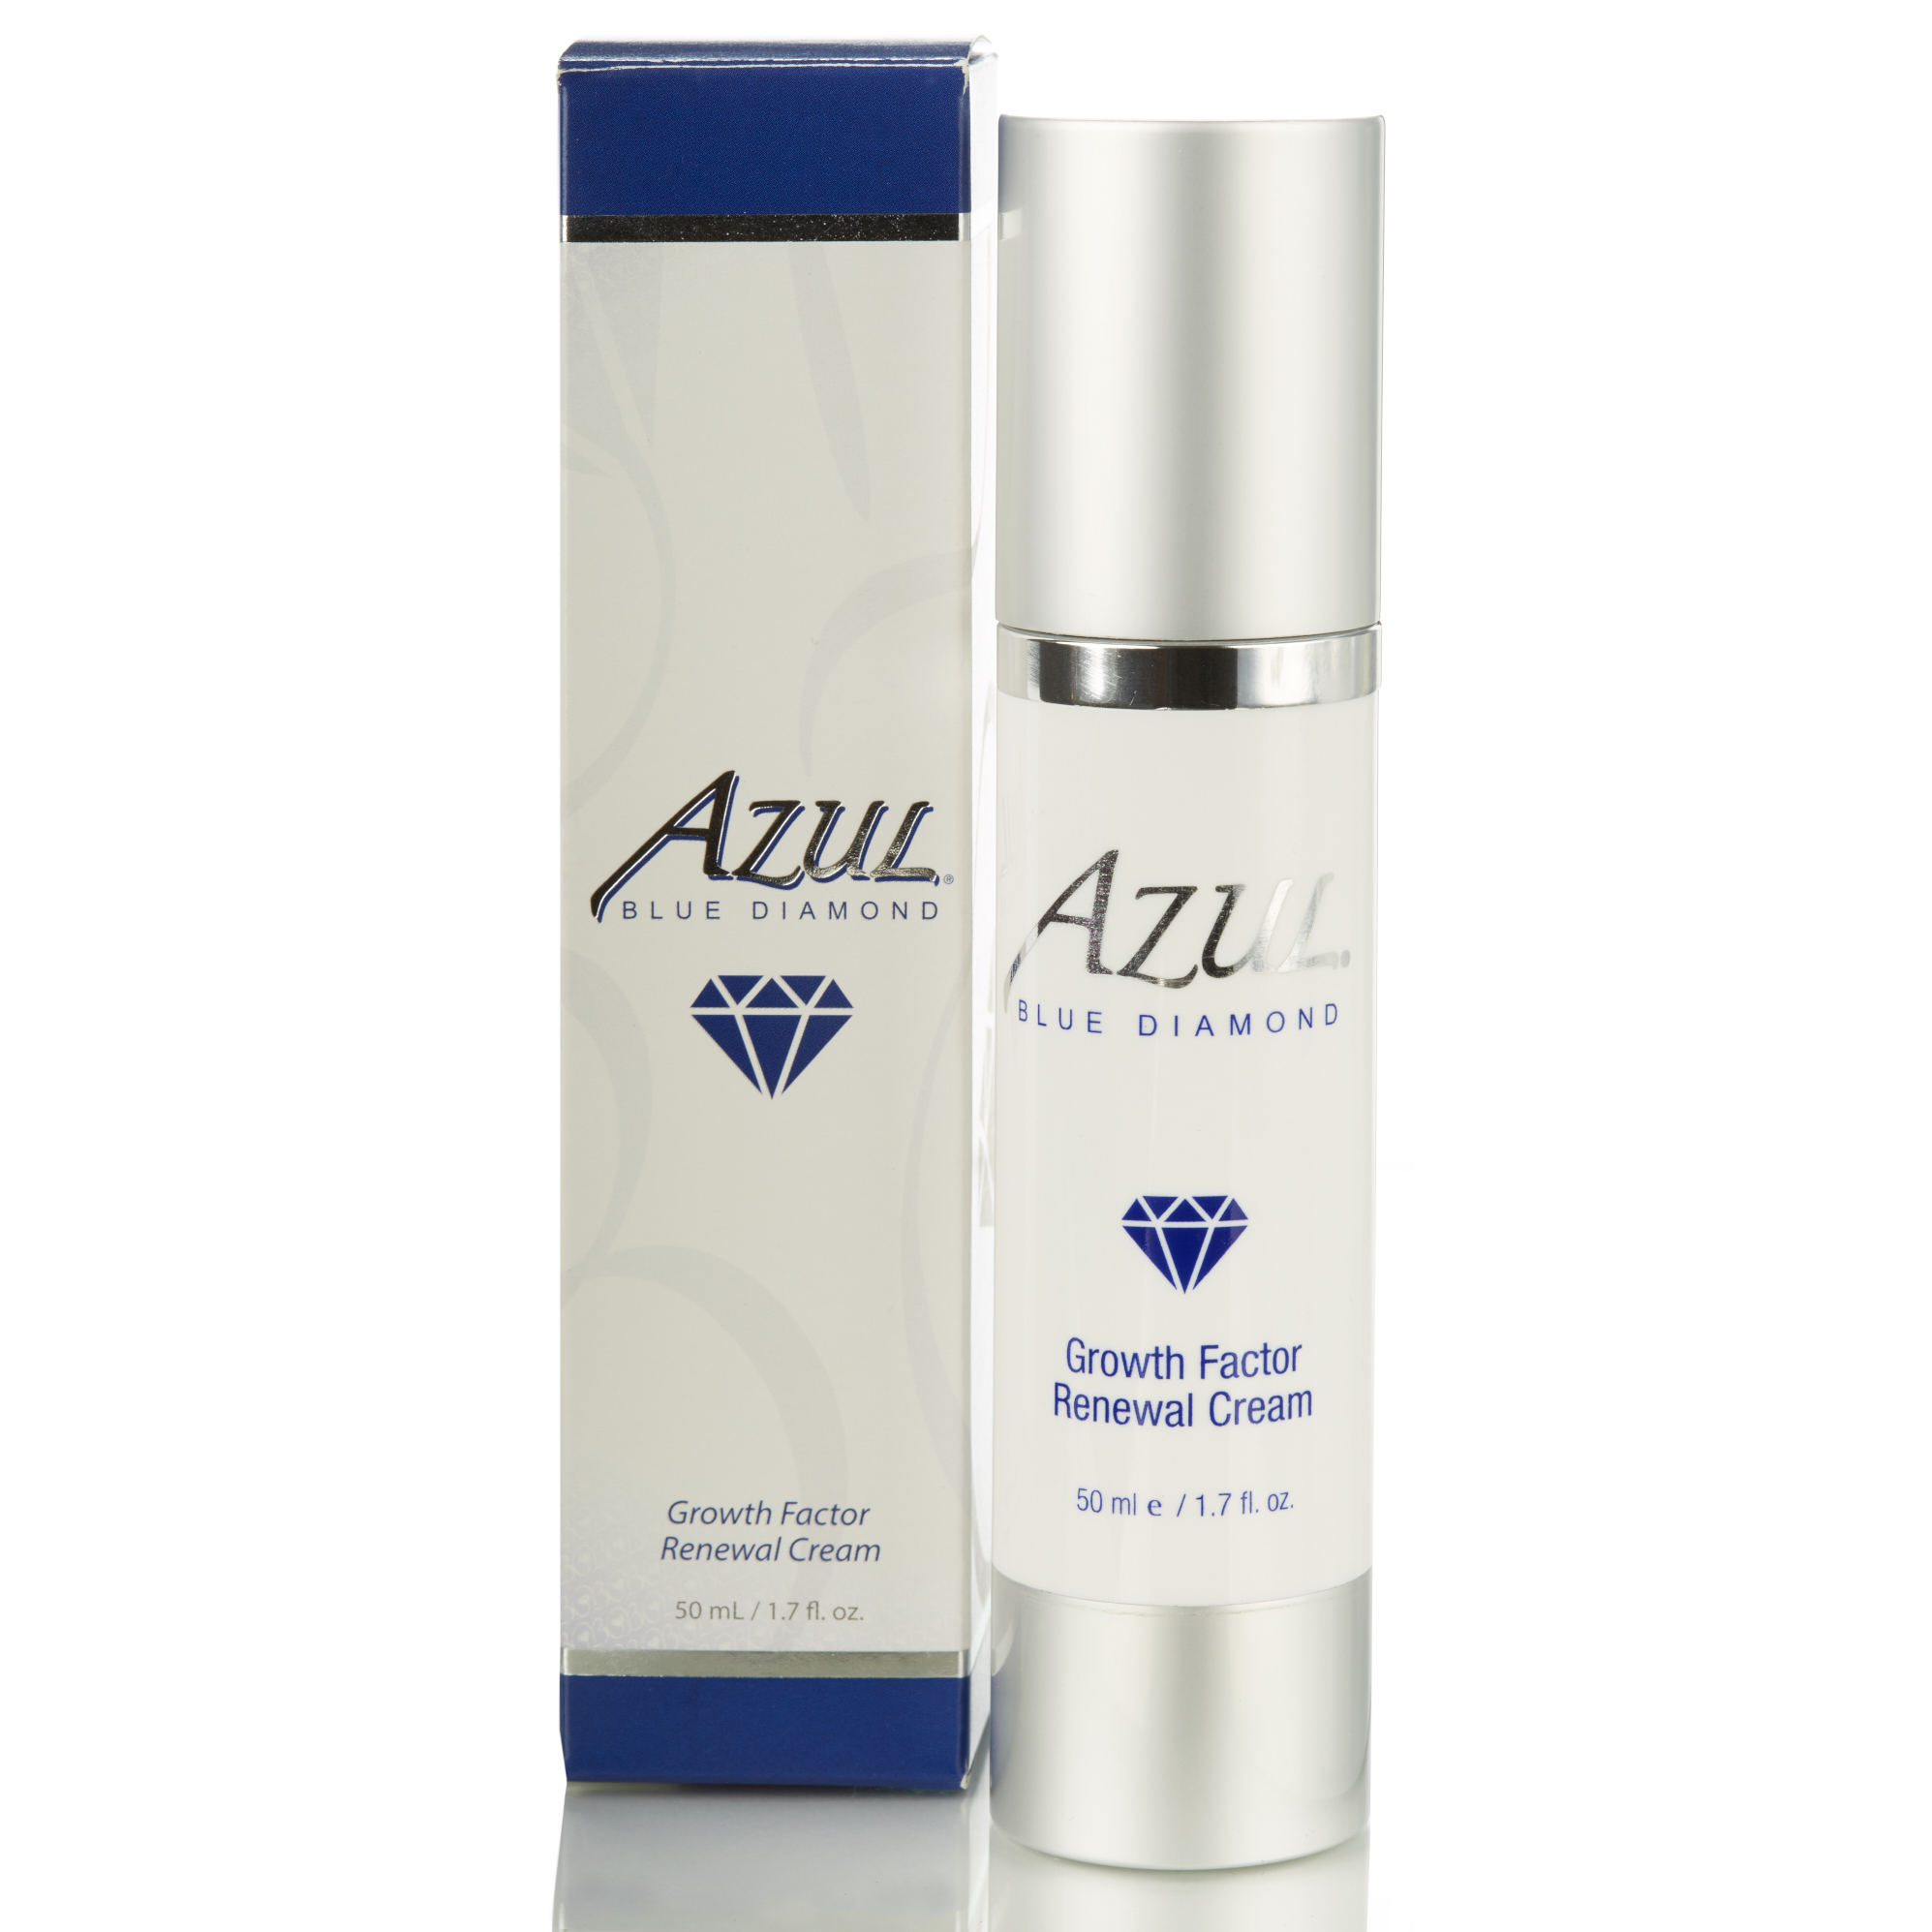 Azul Blue Diamond - Growth Factor Renewal Cream